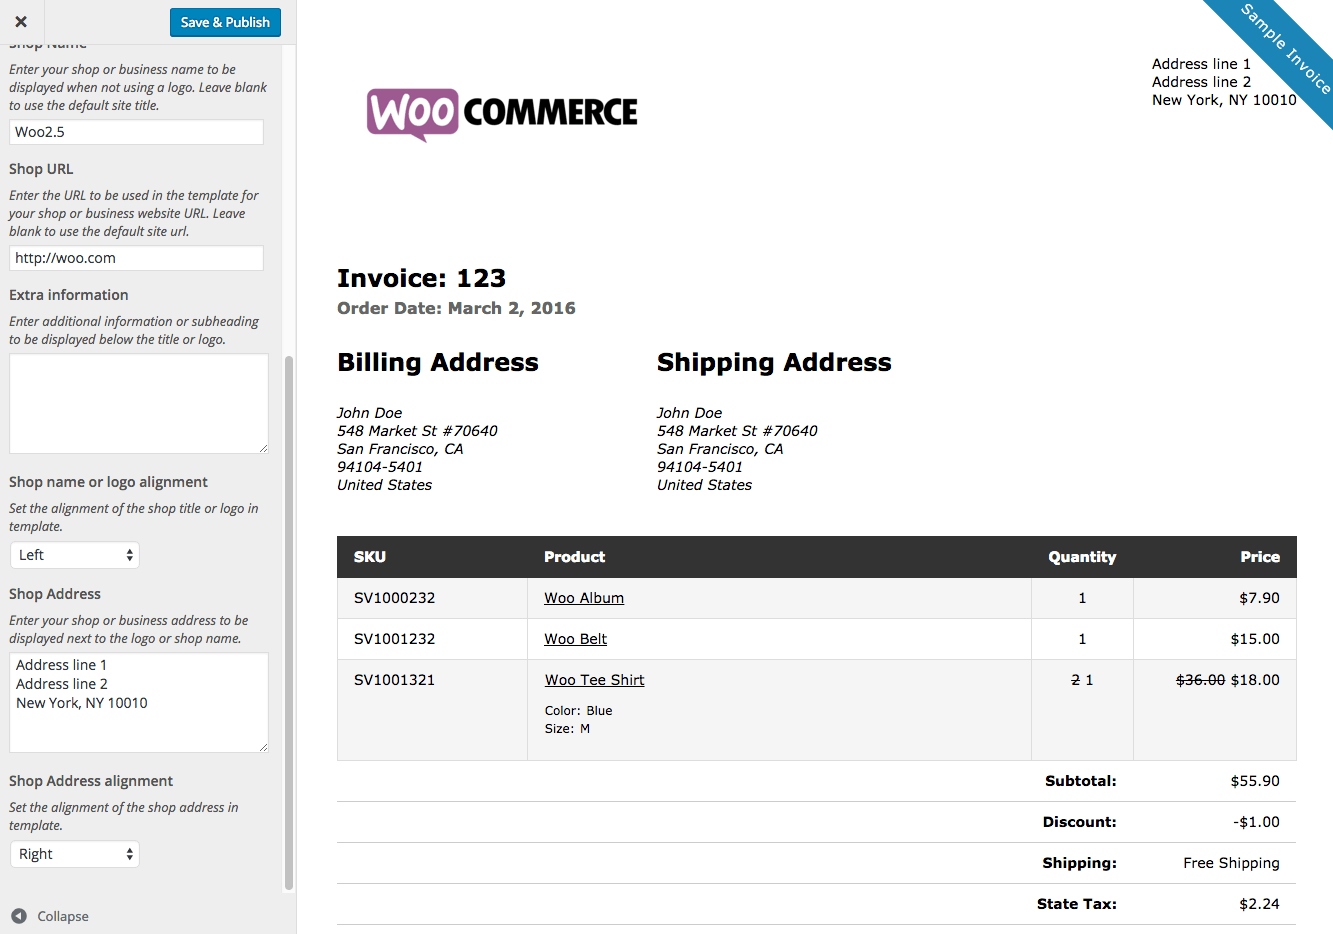 Maidofhonortoastus  Marvelous Woocommerce Print Invoices Amp Packing Lists  Woocommerce Docs With Interesting Woocommerce Print Invoices  Packing Lists Customizer With Easy On The Eye Kohls Return Policy No Receipt Also Bpa Free Receipt Paper In Addition No Receipt Return Policy And Free Payment Receipt Template As Well As Miscellaneous Receipts Additionally Hillsborough County Business Tax Receipt From Docswoocommercecom With Maidofhonortoastus  Interesting Woocommerce Print Invoices Amp Packing Lists  Woocommerce Docs With Easy On The Eye Woocommerce Print Invoices  Packing Lists Customizer And Marvelous Kohls Return Policy No Receipt Also Bpa Free Receipt Paper In Addition No Receipt Return Policy From Docswoocommercecom